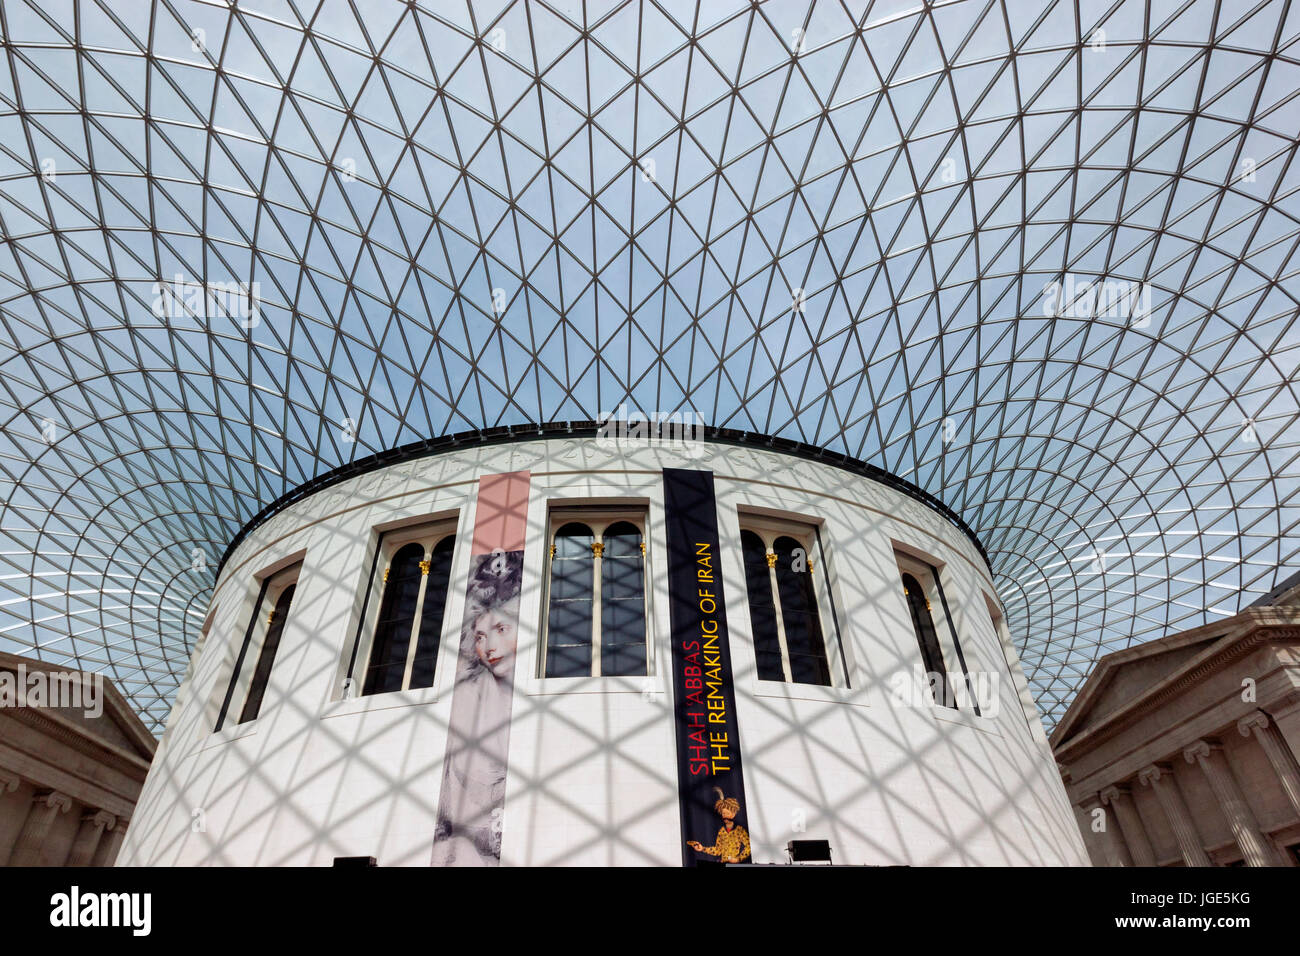 The British Museum Elizabeth II Great Court designed by Foster and Partners, the Queen Great London, England, UK - Stock Image